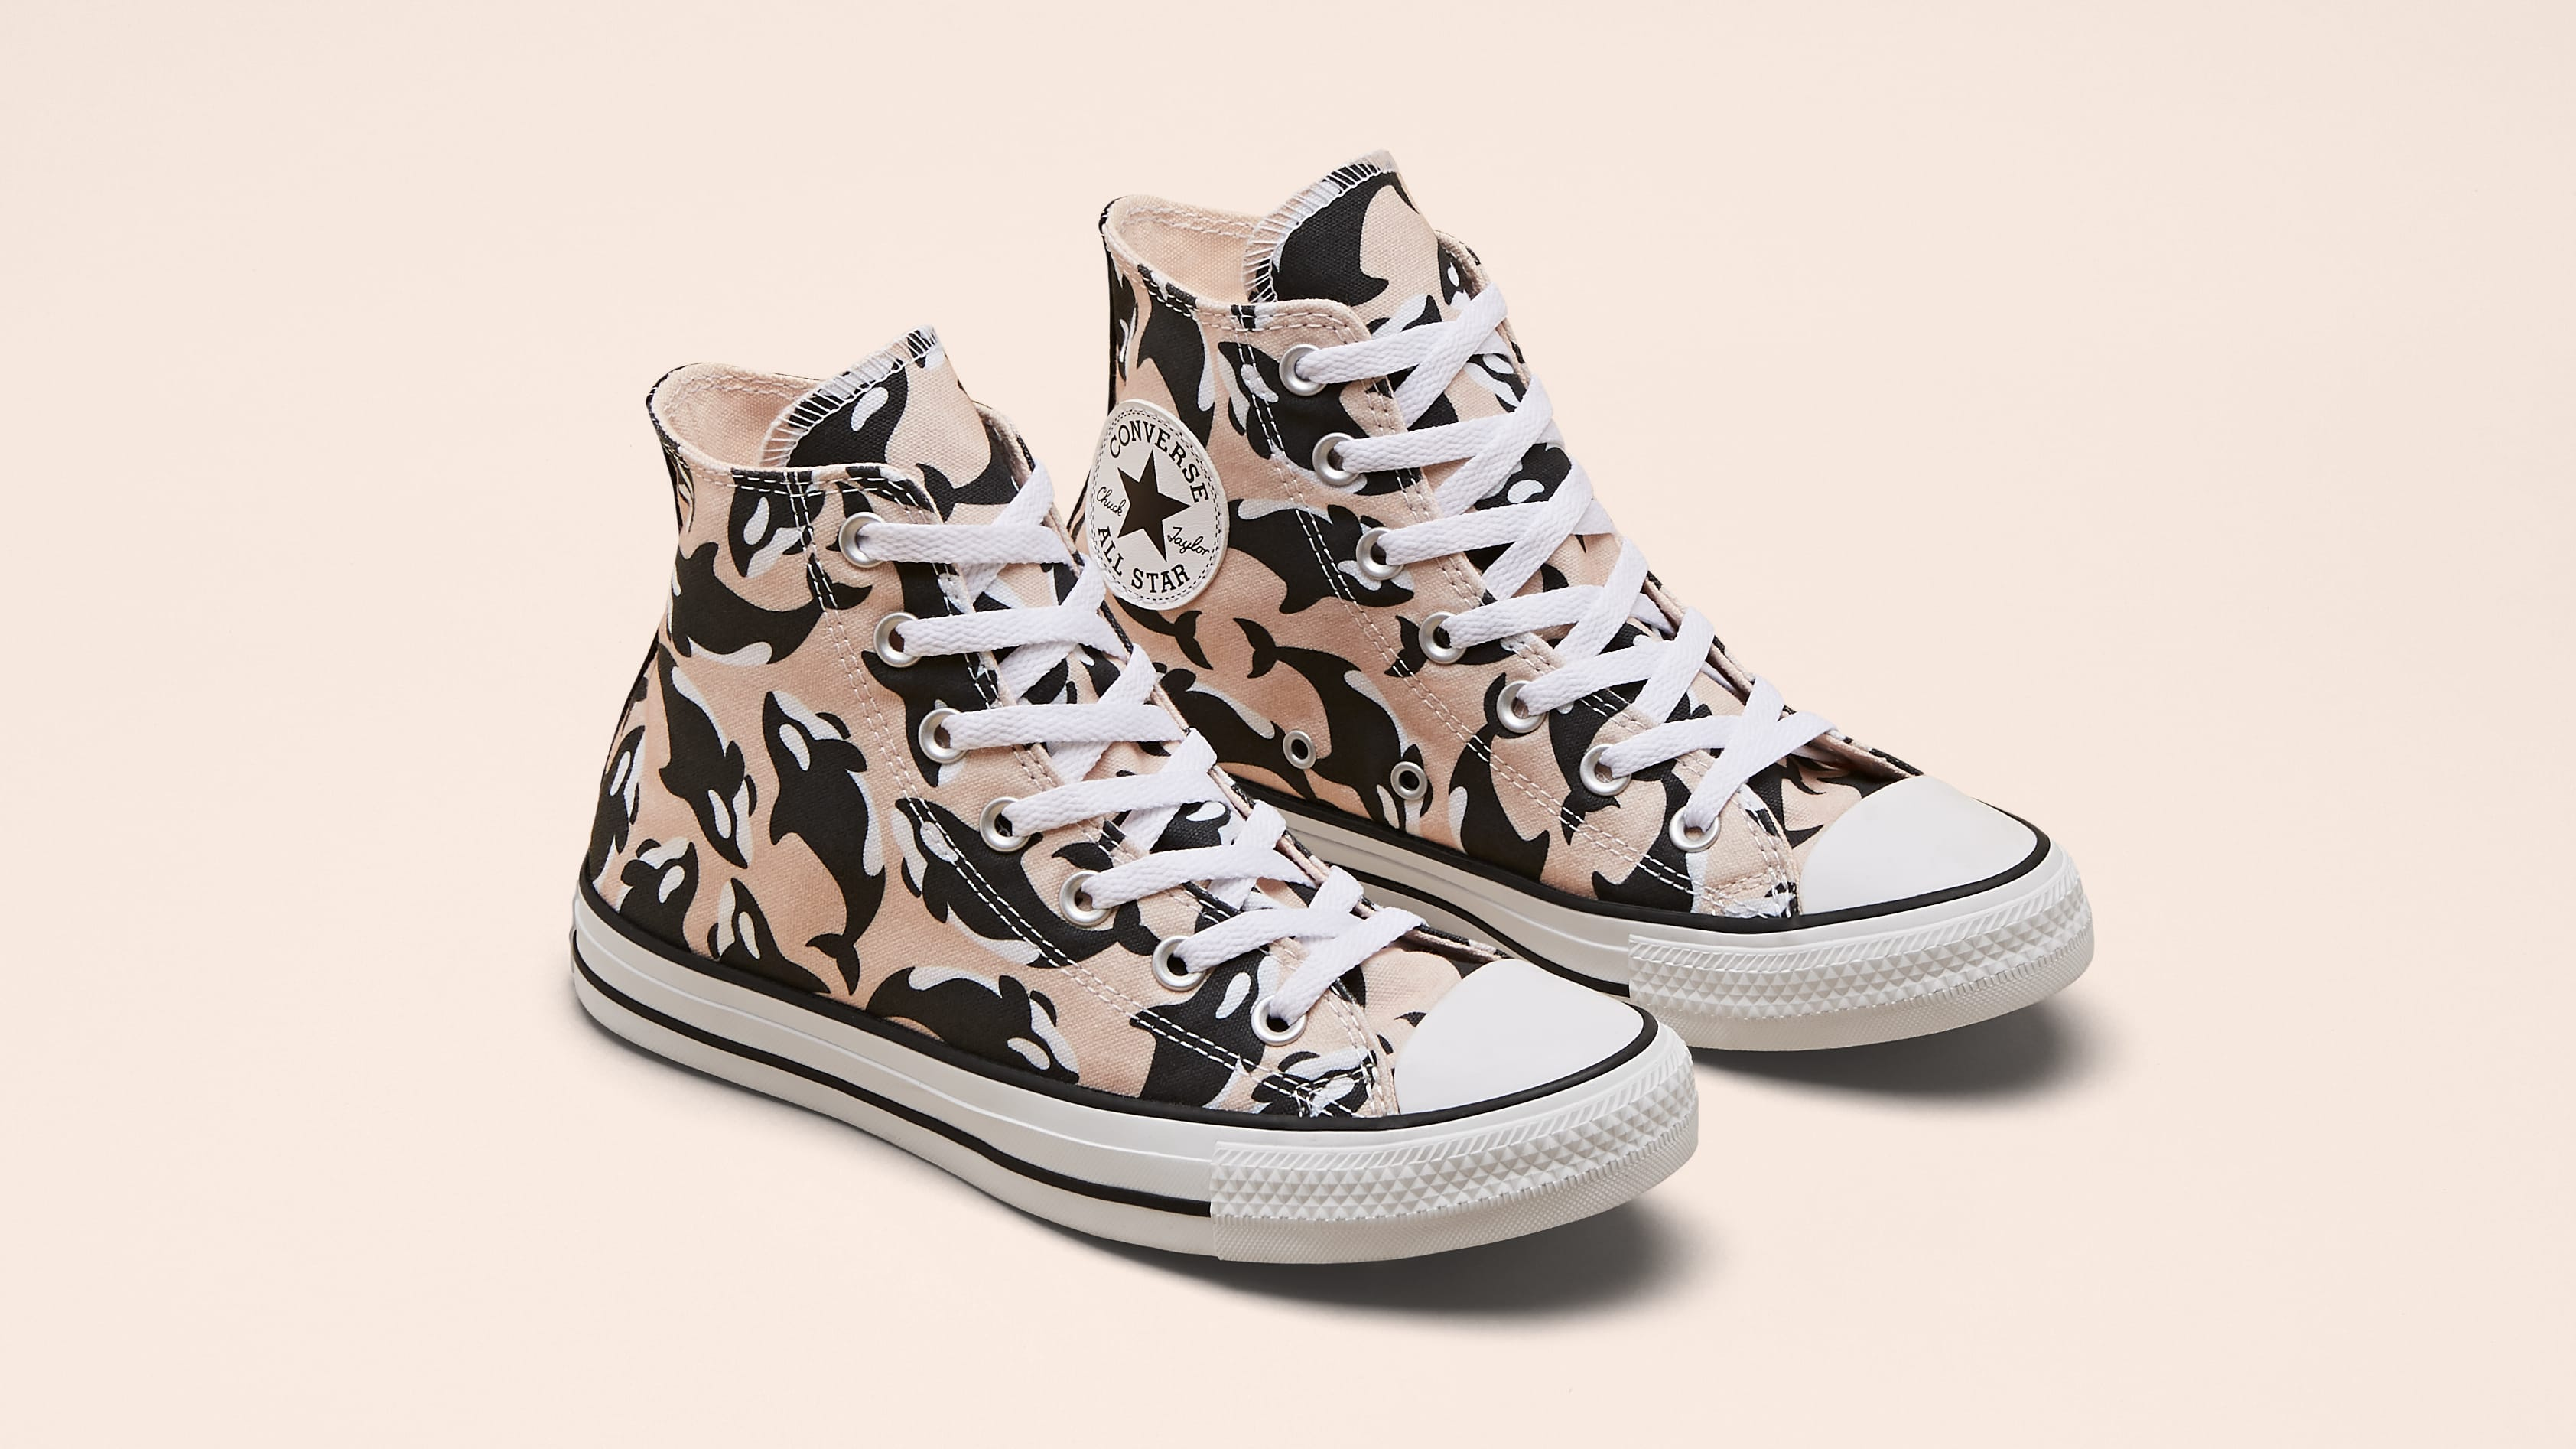 Millie Bobby Brown x Converse 'Millie By You' 5